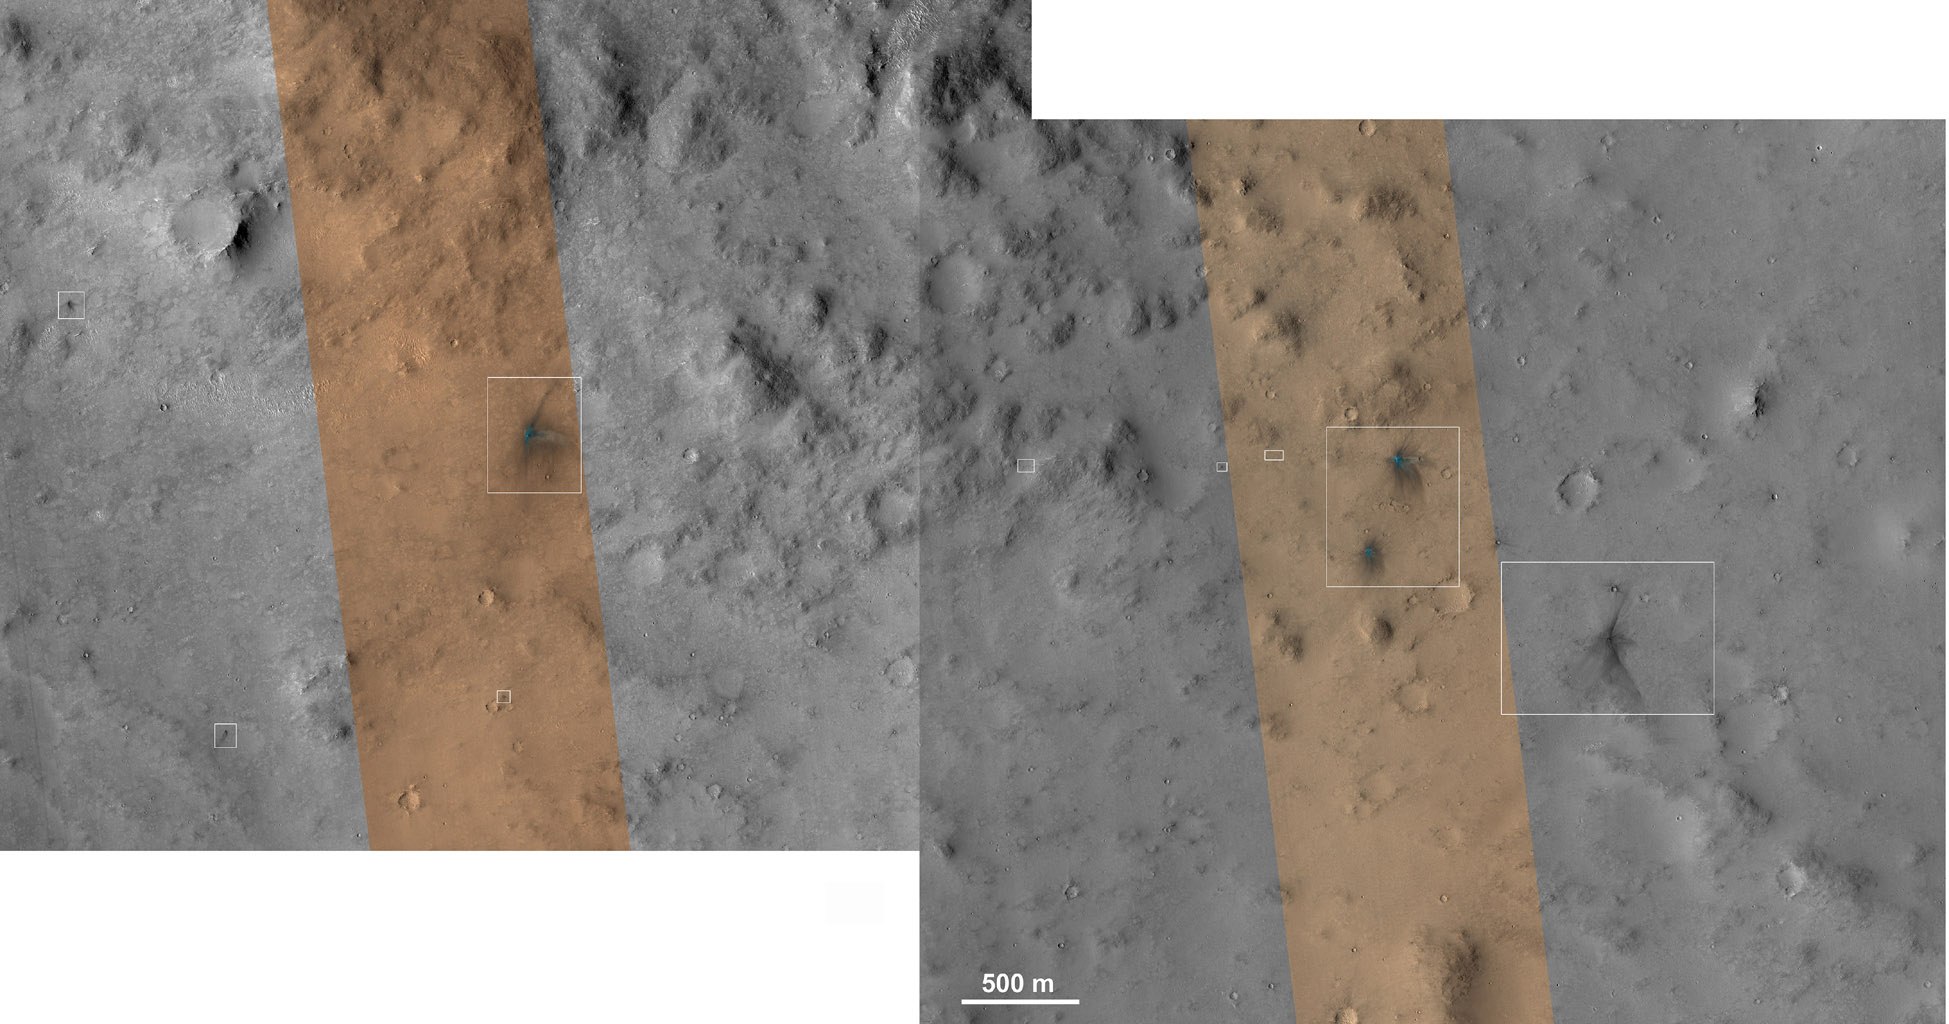 These images from the NASA Mars Reconnaissance Orbiter show several impact scars on Mars made by pieces of the NASA Mars Science Laboratory spacecraft that the spacecraft shed just before entering the Martian atmosphere.